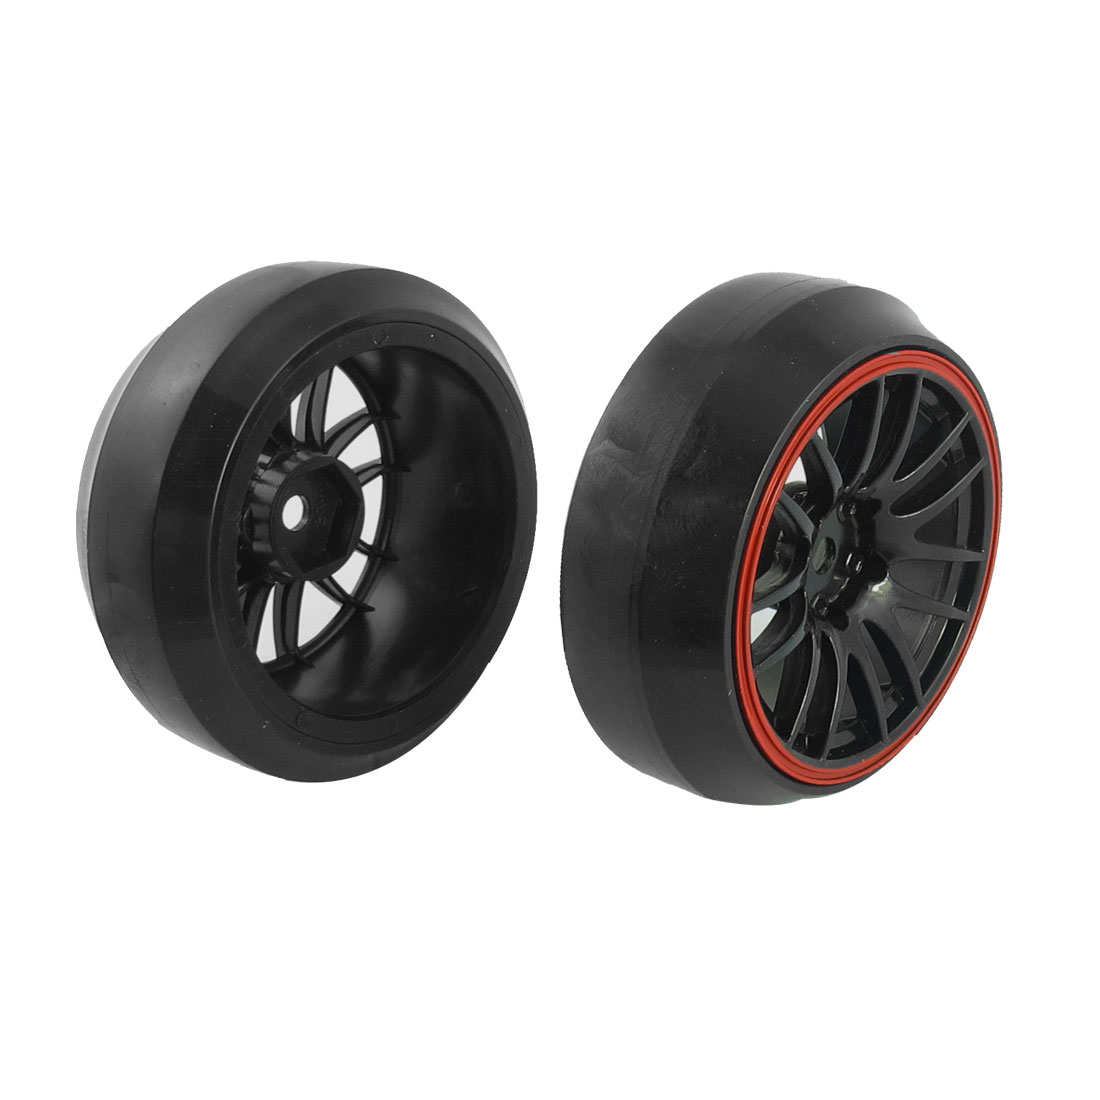 2 Pcs Black Red 1/10 Scale RC Car Direction Drift Wheel Rim Tyre for Yokomo HPI